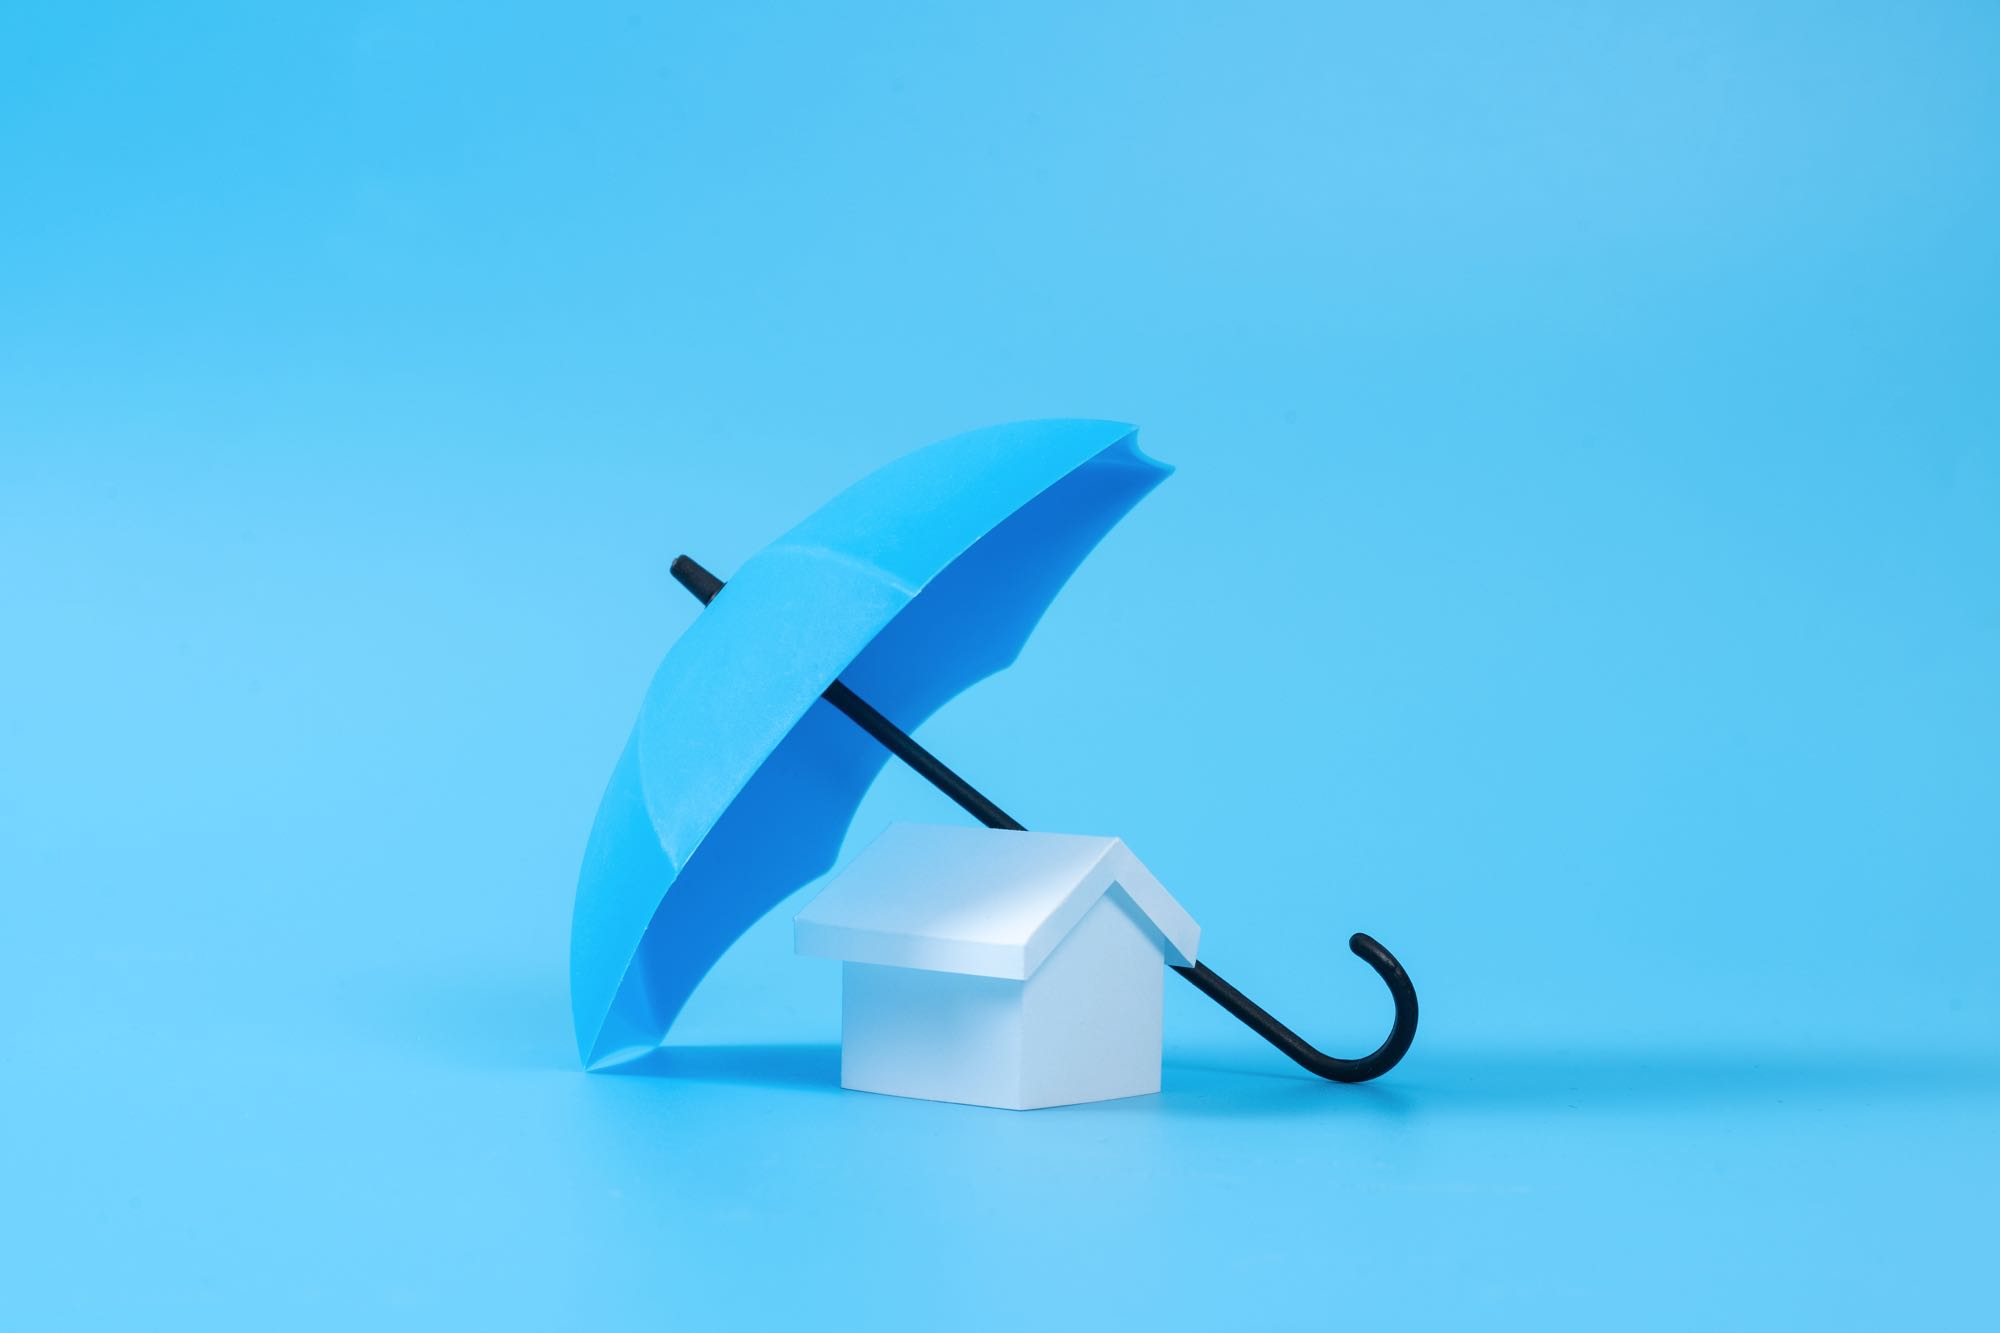 house-model-under-blue-color-umbrella-ETENSY7.jpg